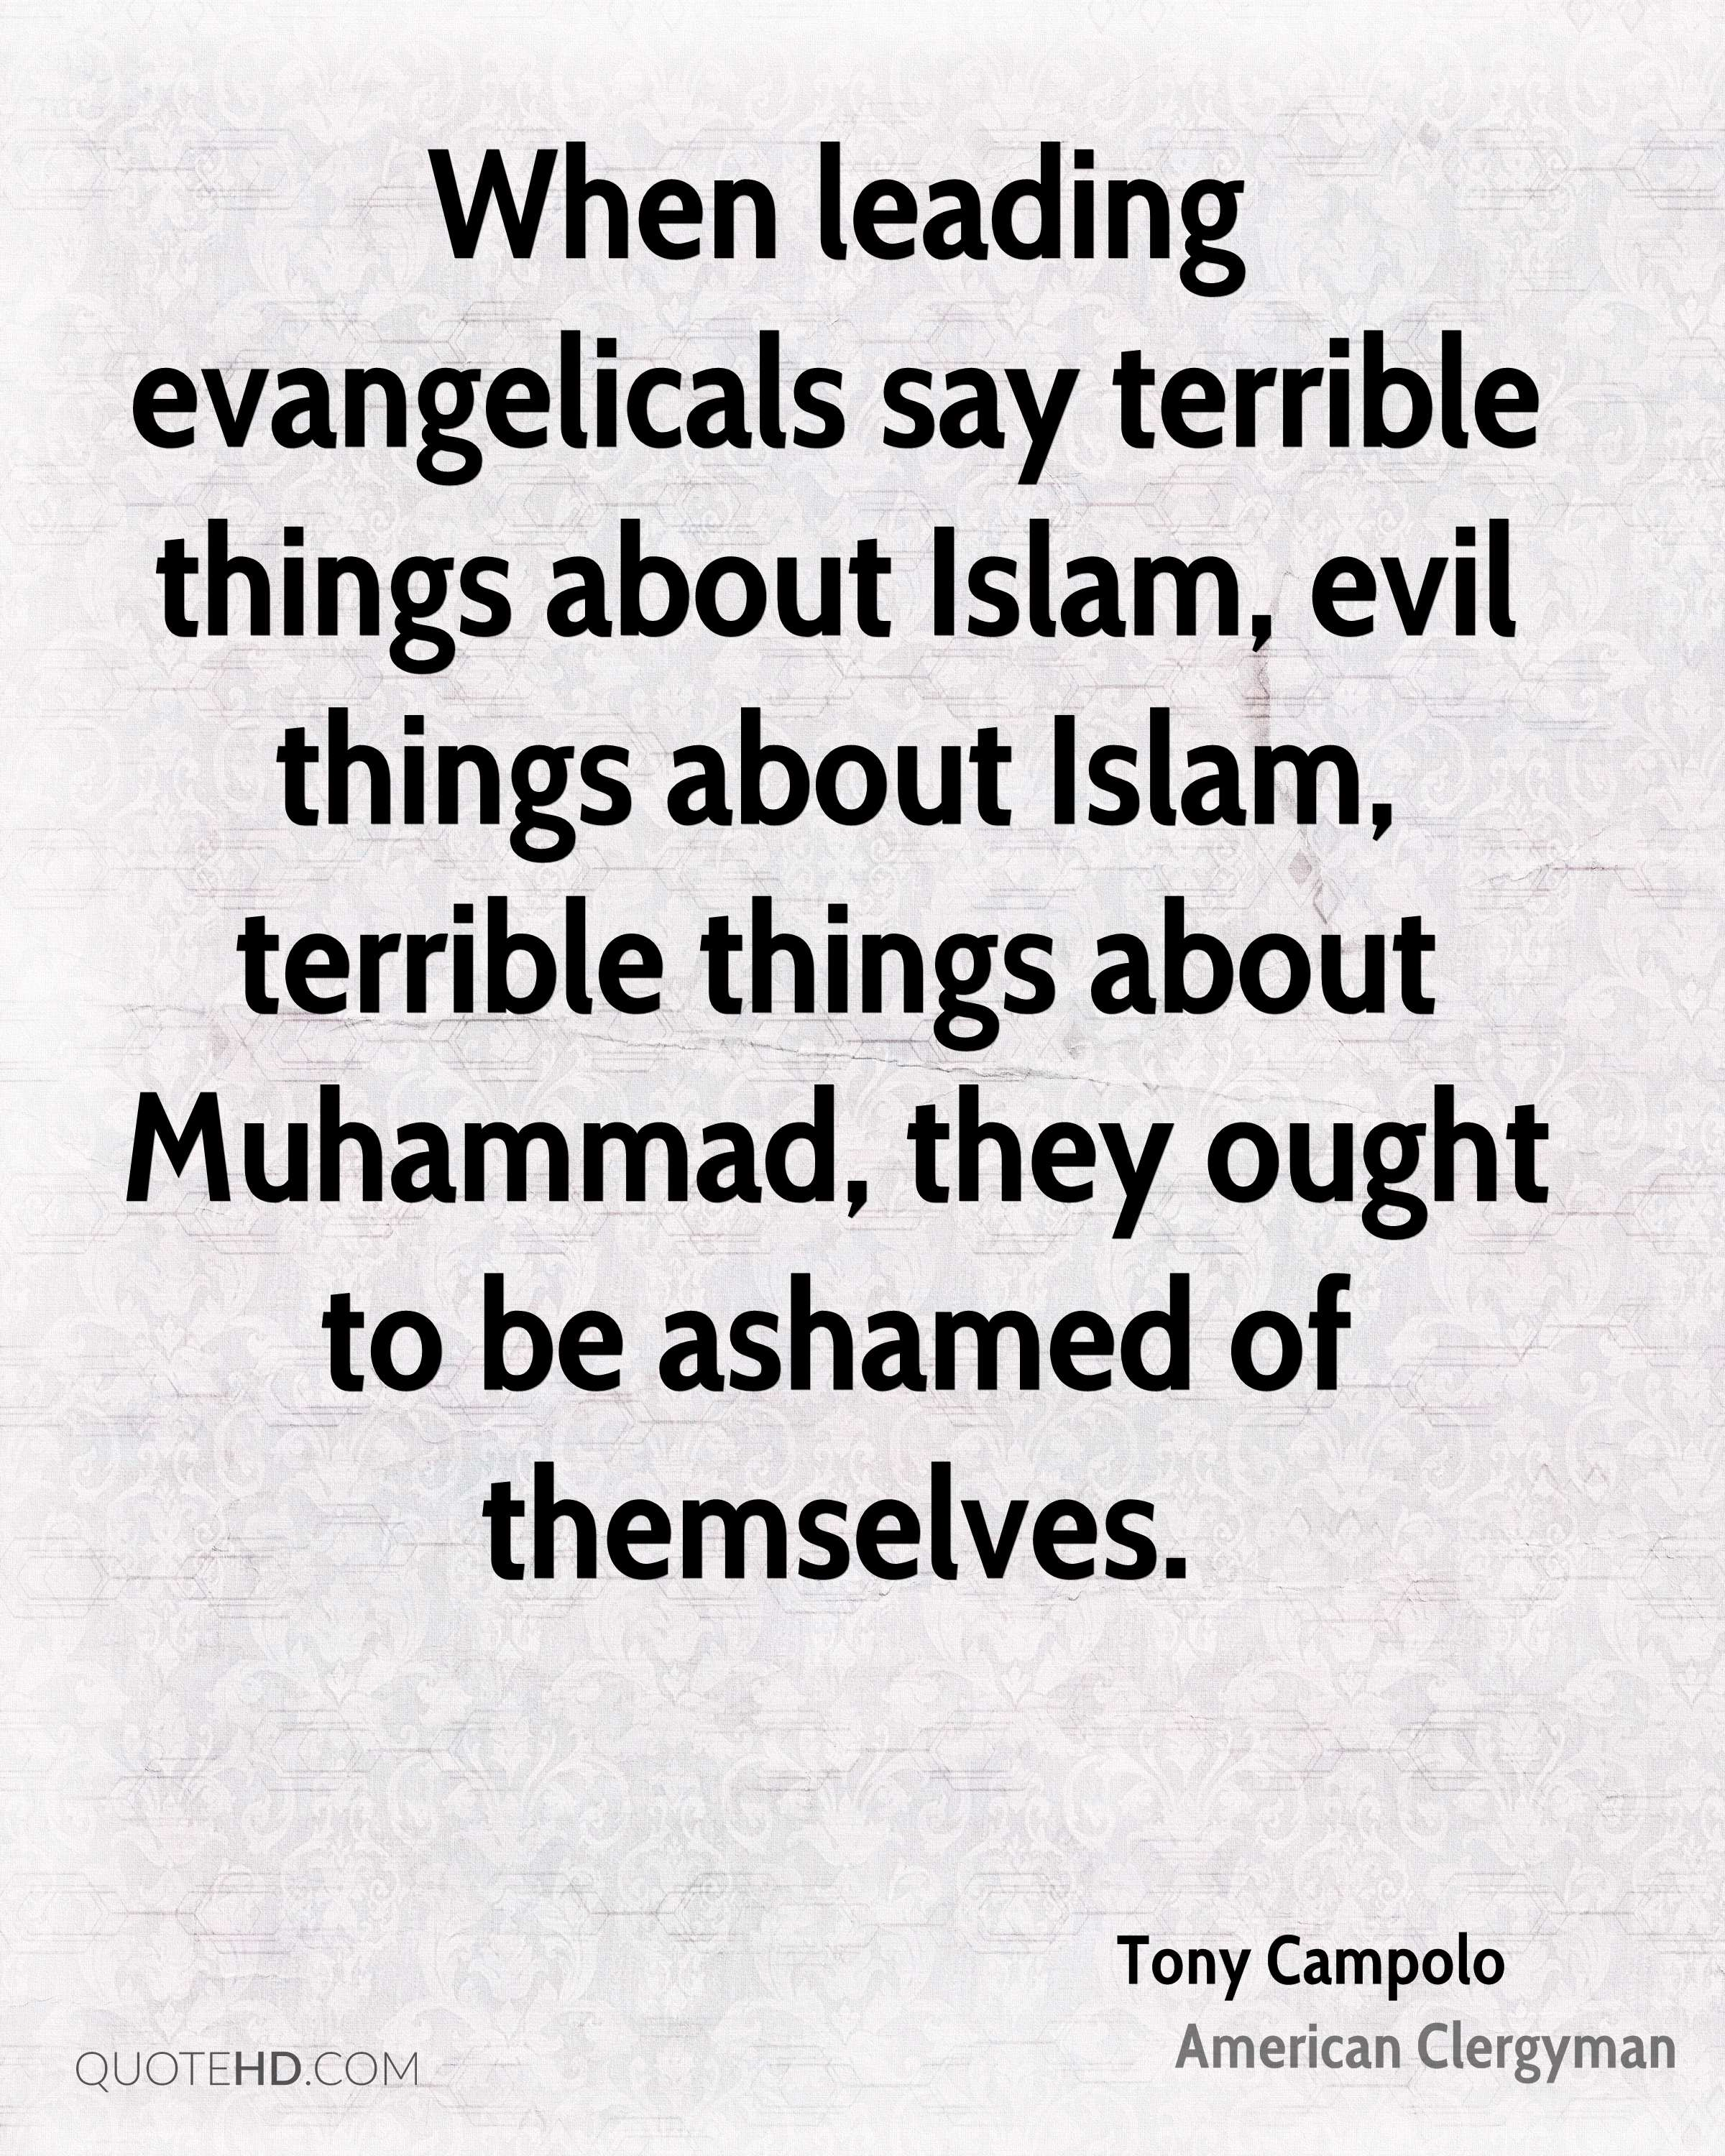 When leading evangelicals say terrible things about Islam, evil things about Islam, terrible things about Muhammad, they ought to be ashamed of themselves.